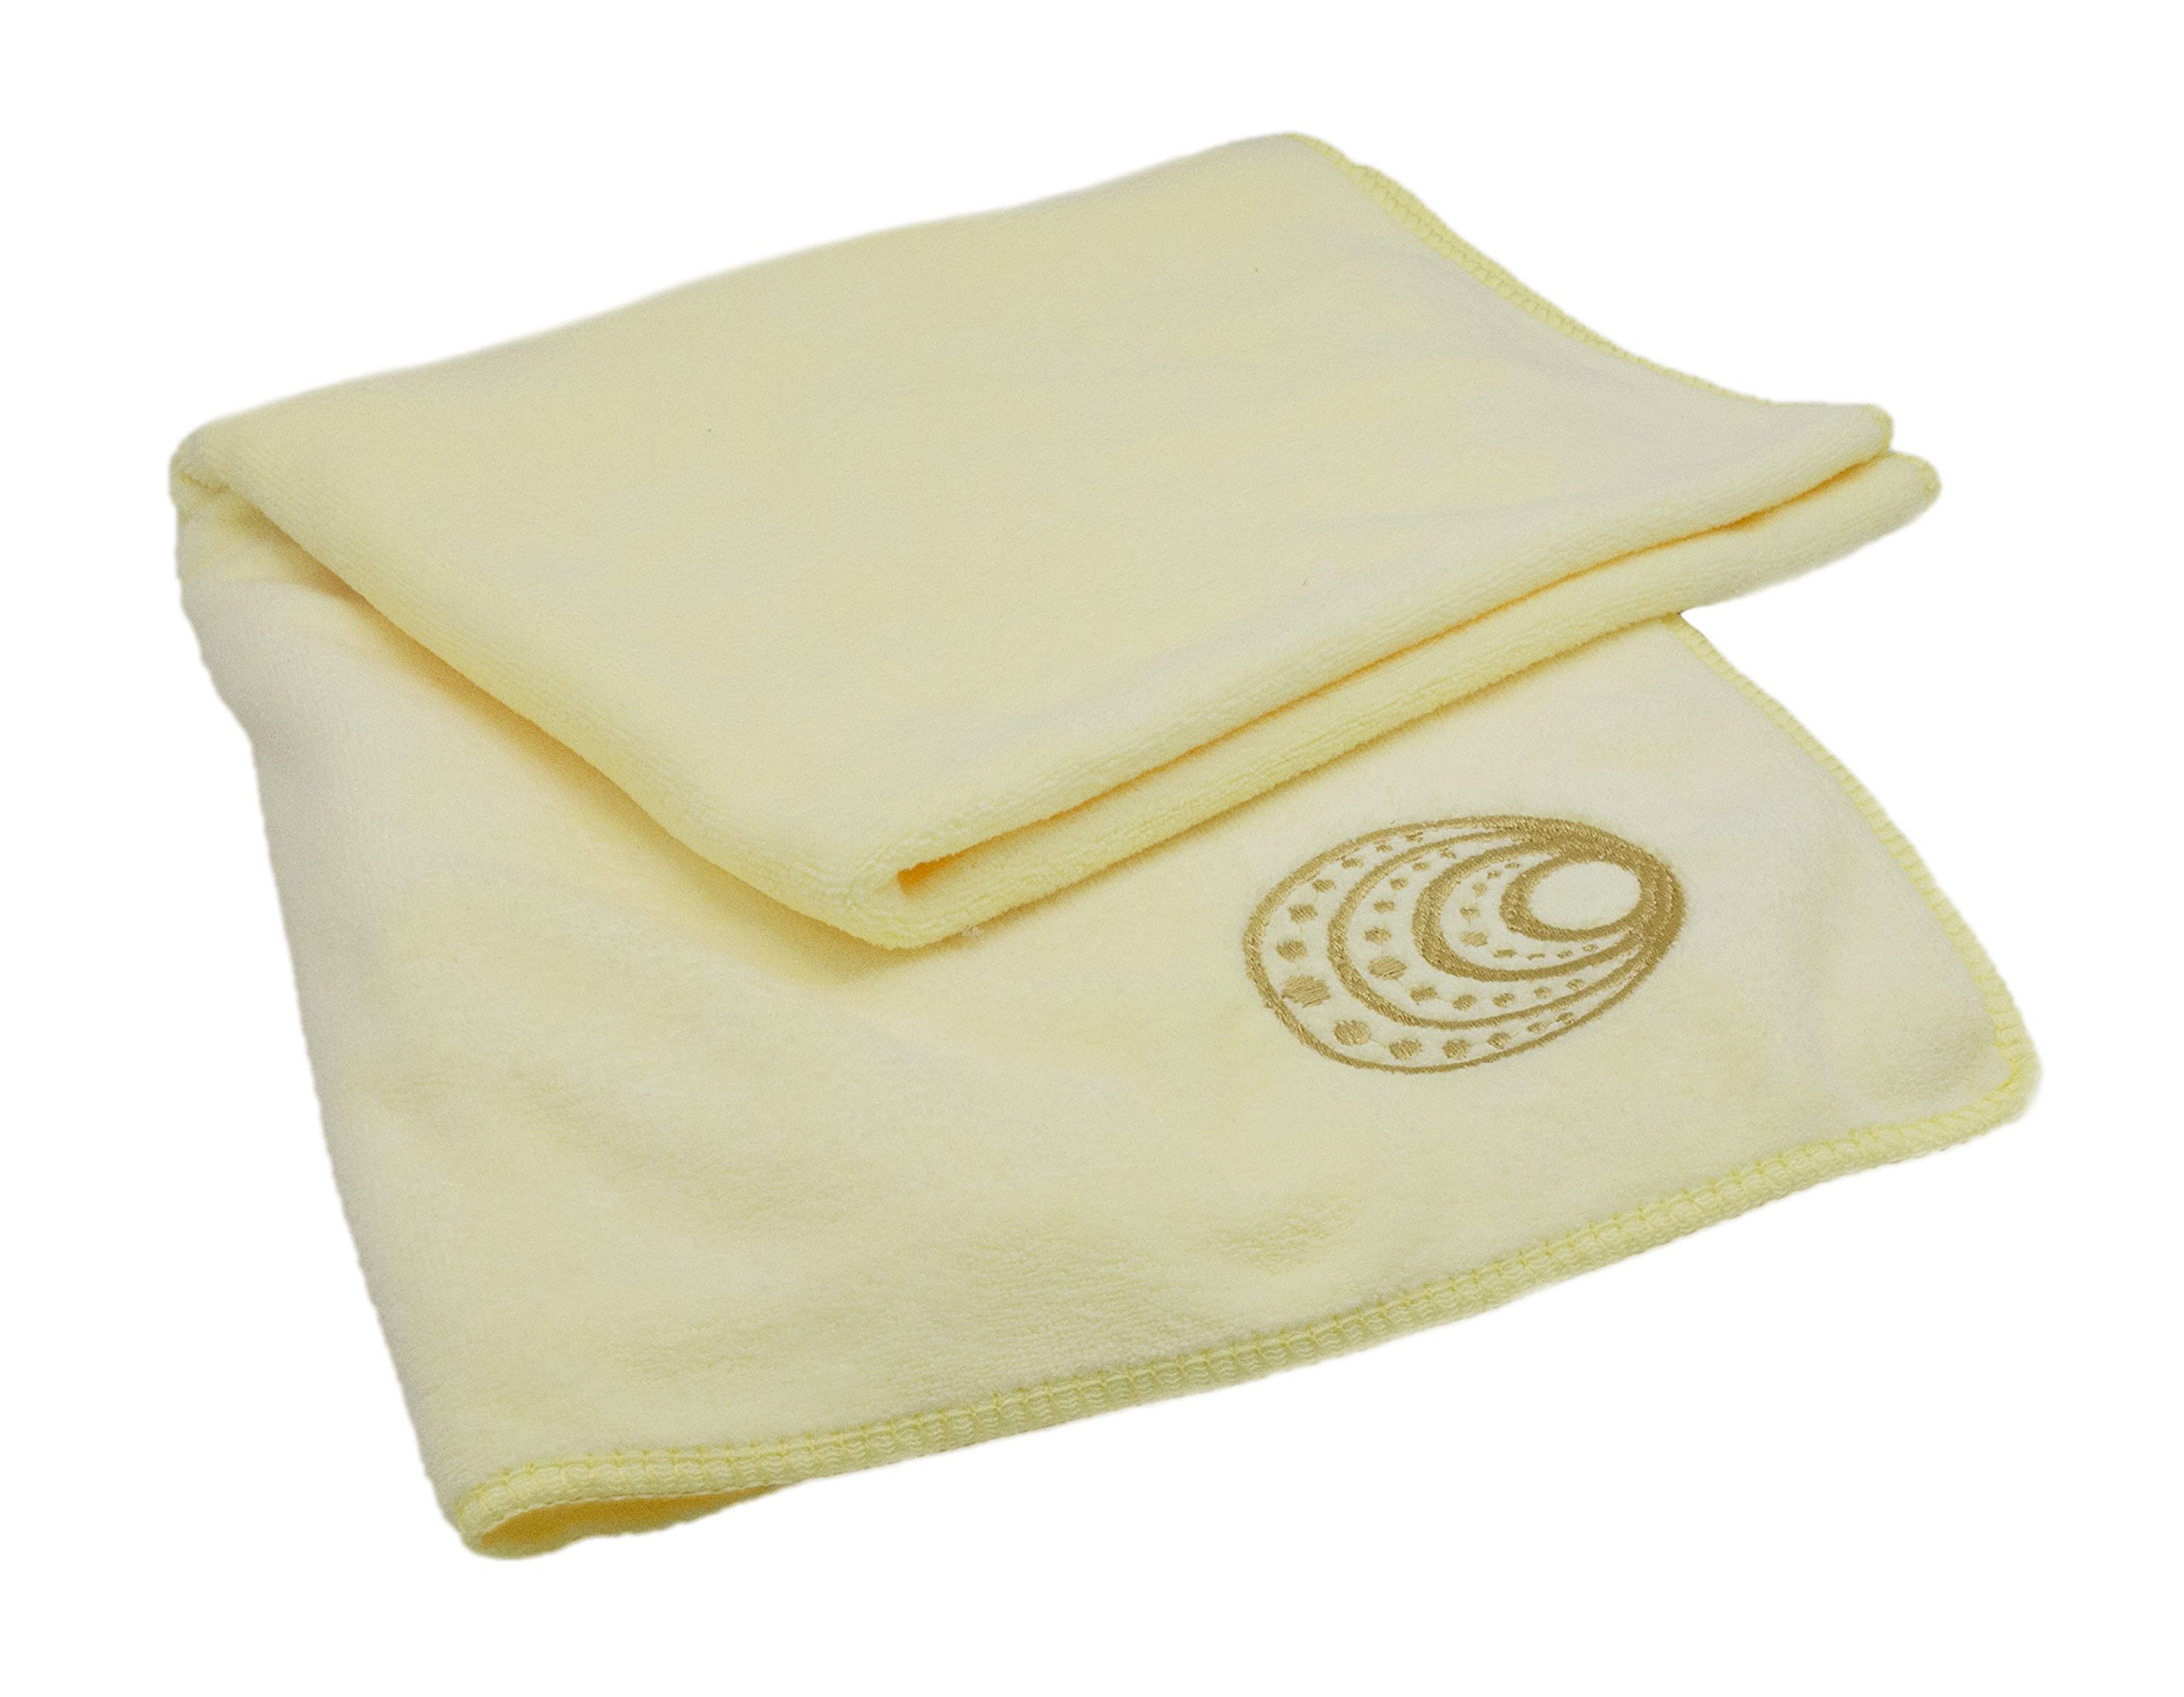 NU Comfort Microfiber Anti Frizz Hair Towel- Super Absorbent, Lightweight, and Extra Soft! (Large)